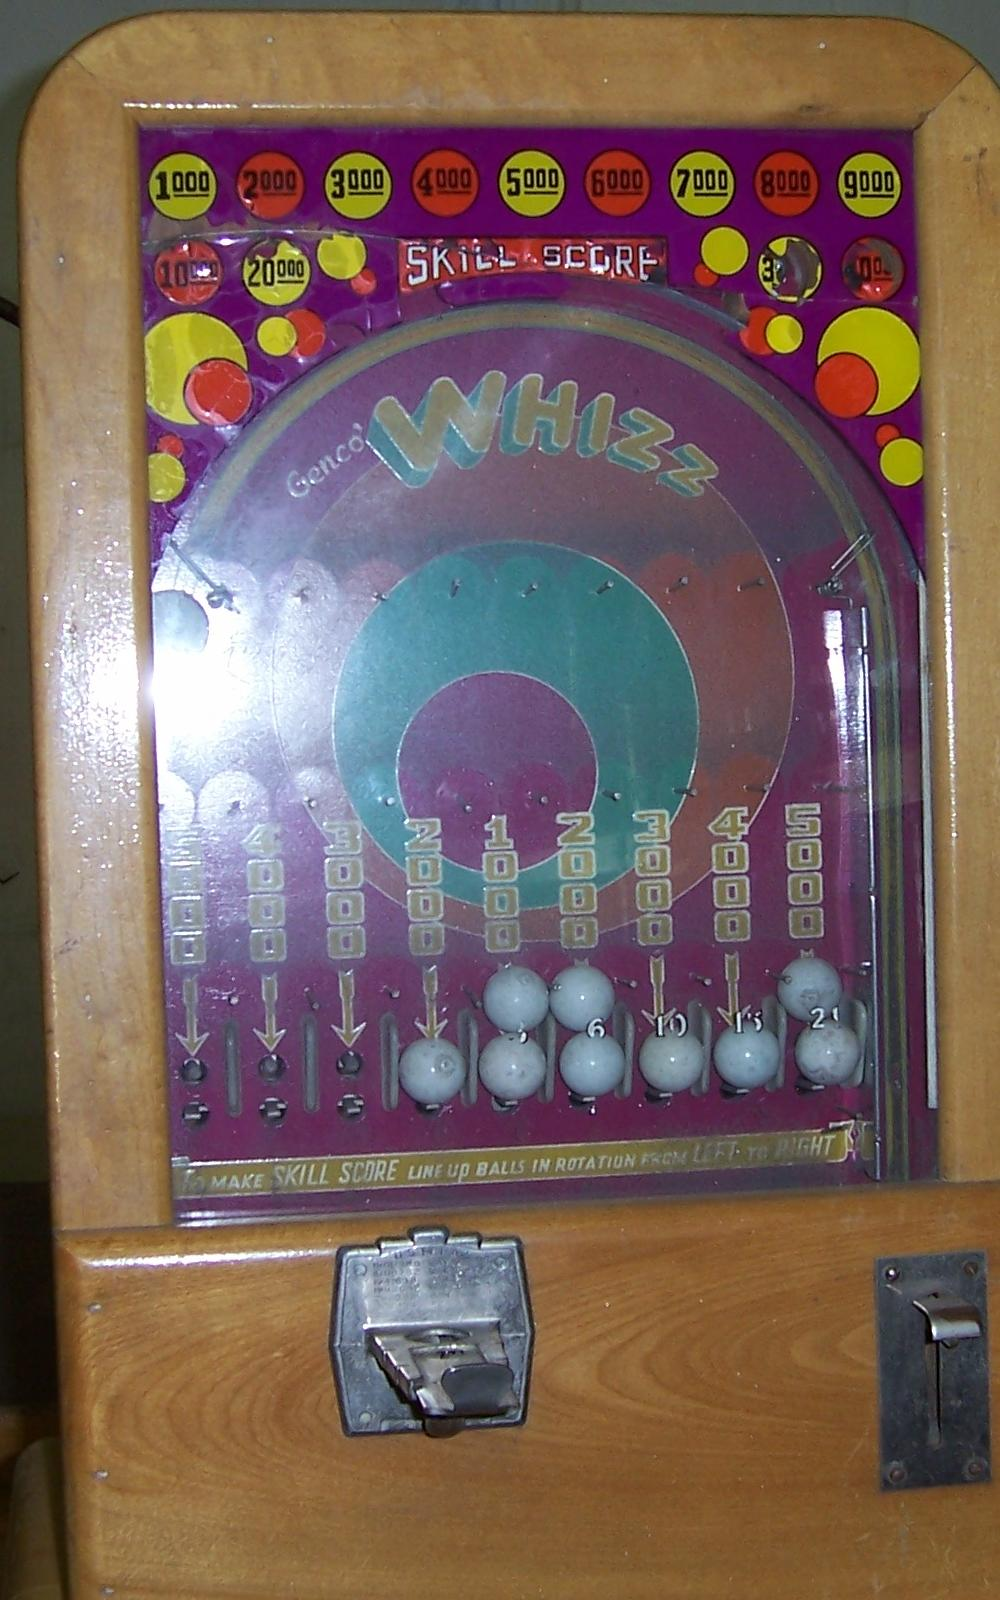 1946 Genco Whizz Coin Operated Arcade Game